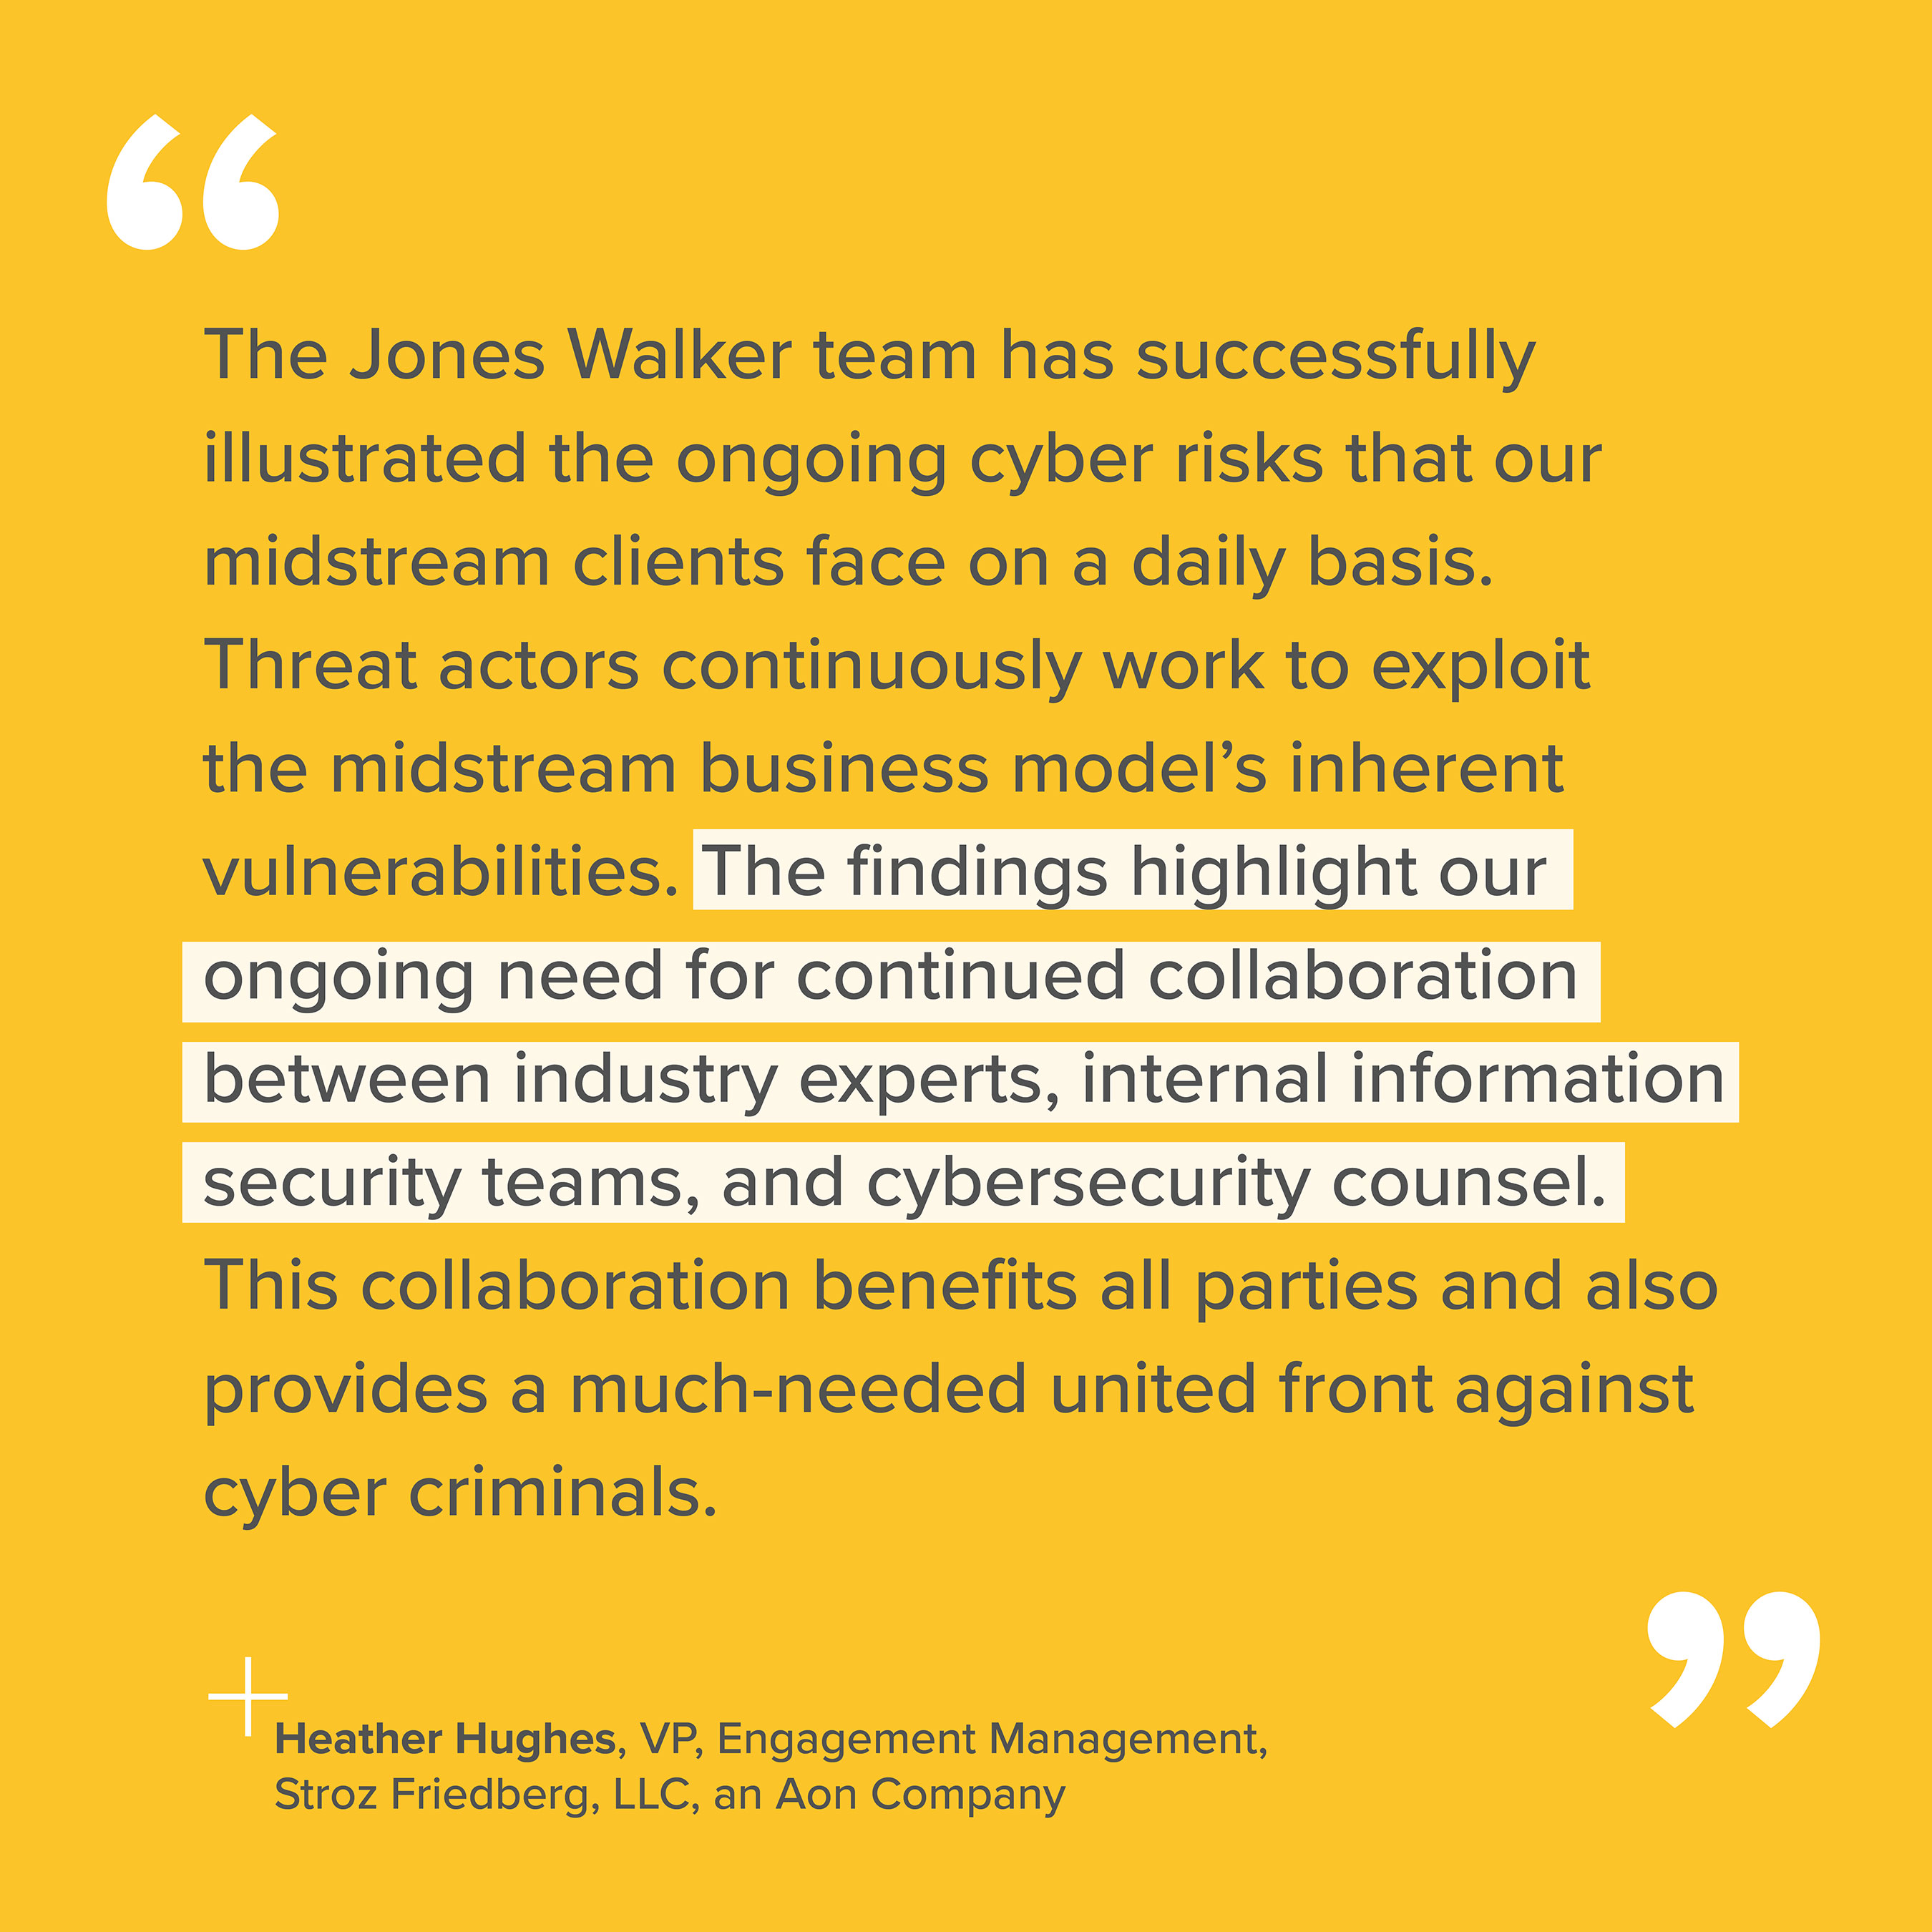 Quote about 2020 Jones Walker Midstream Oil and Gas Cybersecurity Survey from Heather Hughes, VP, Engagement Management, Stroz Friedberg, LLC, an Aon Company